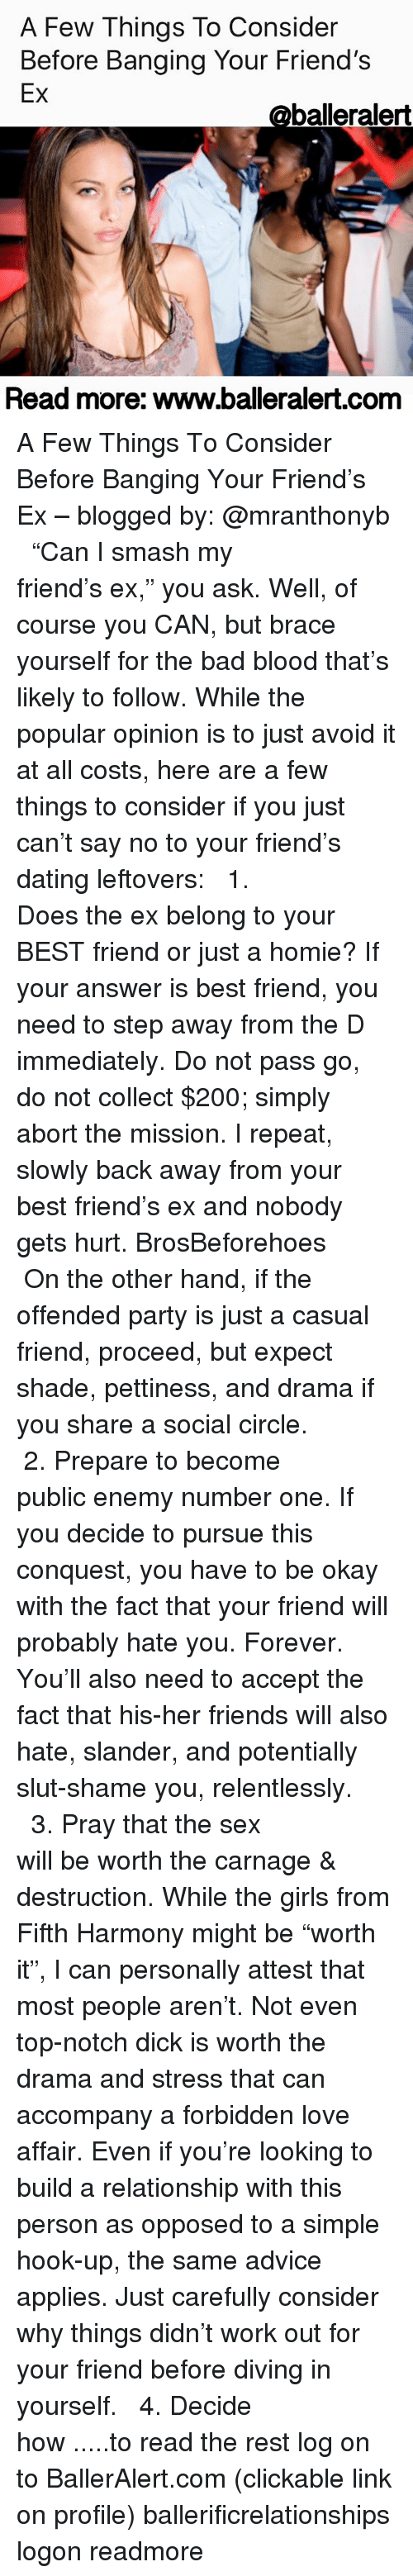 How to become friends before dating